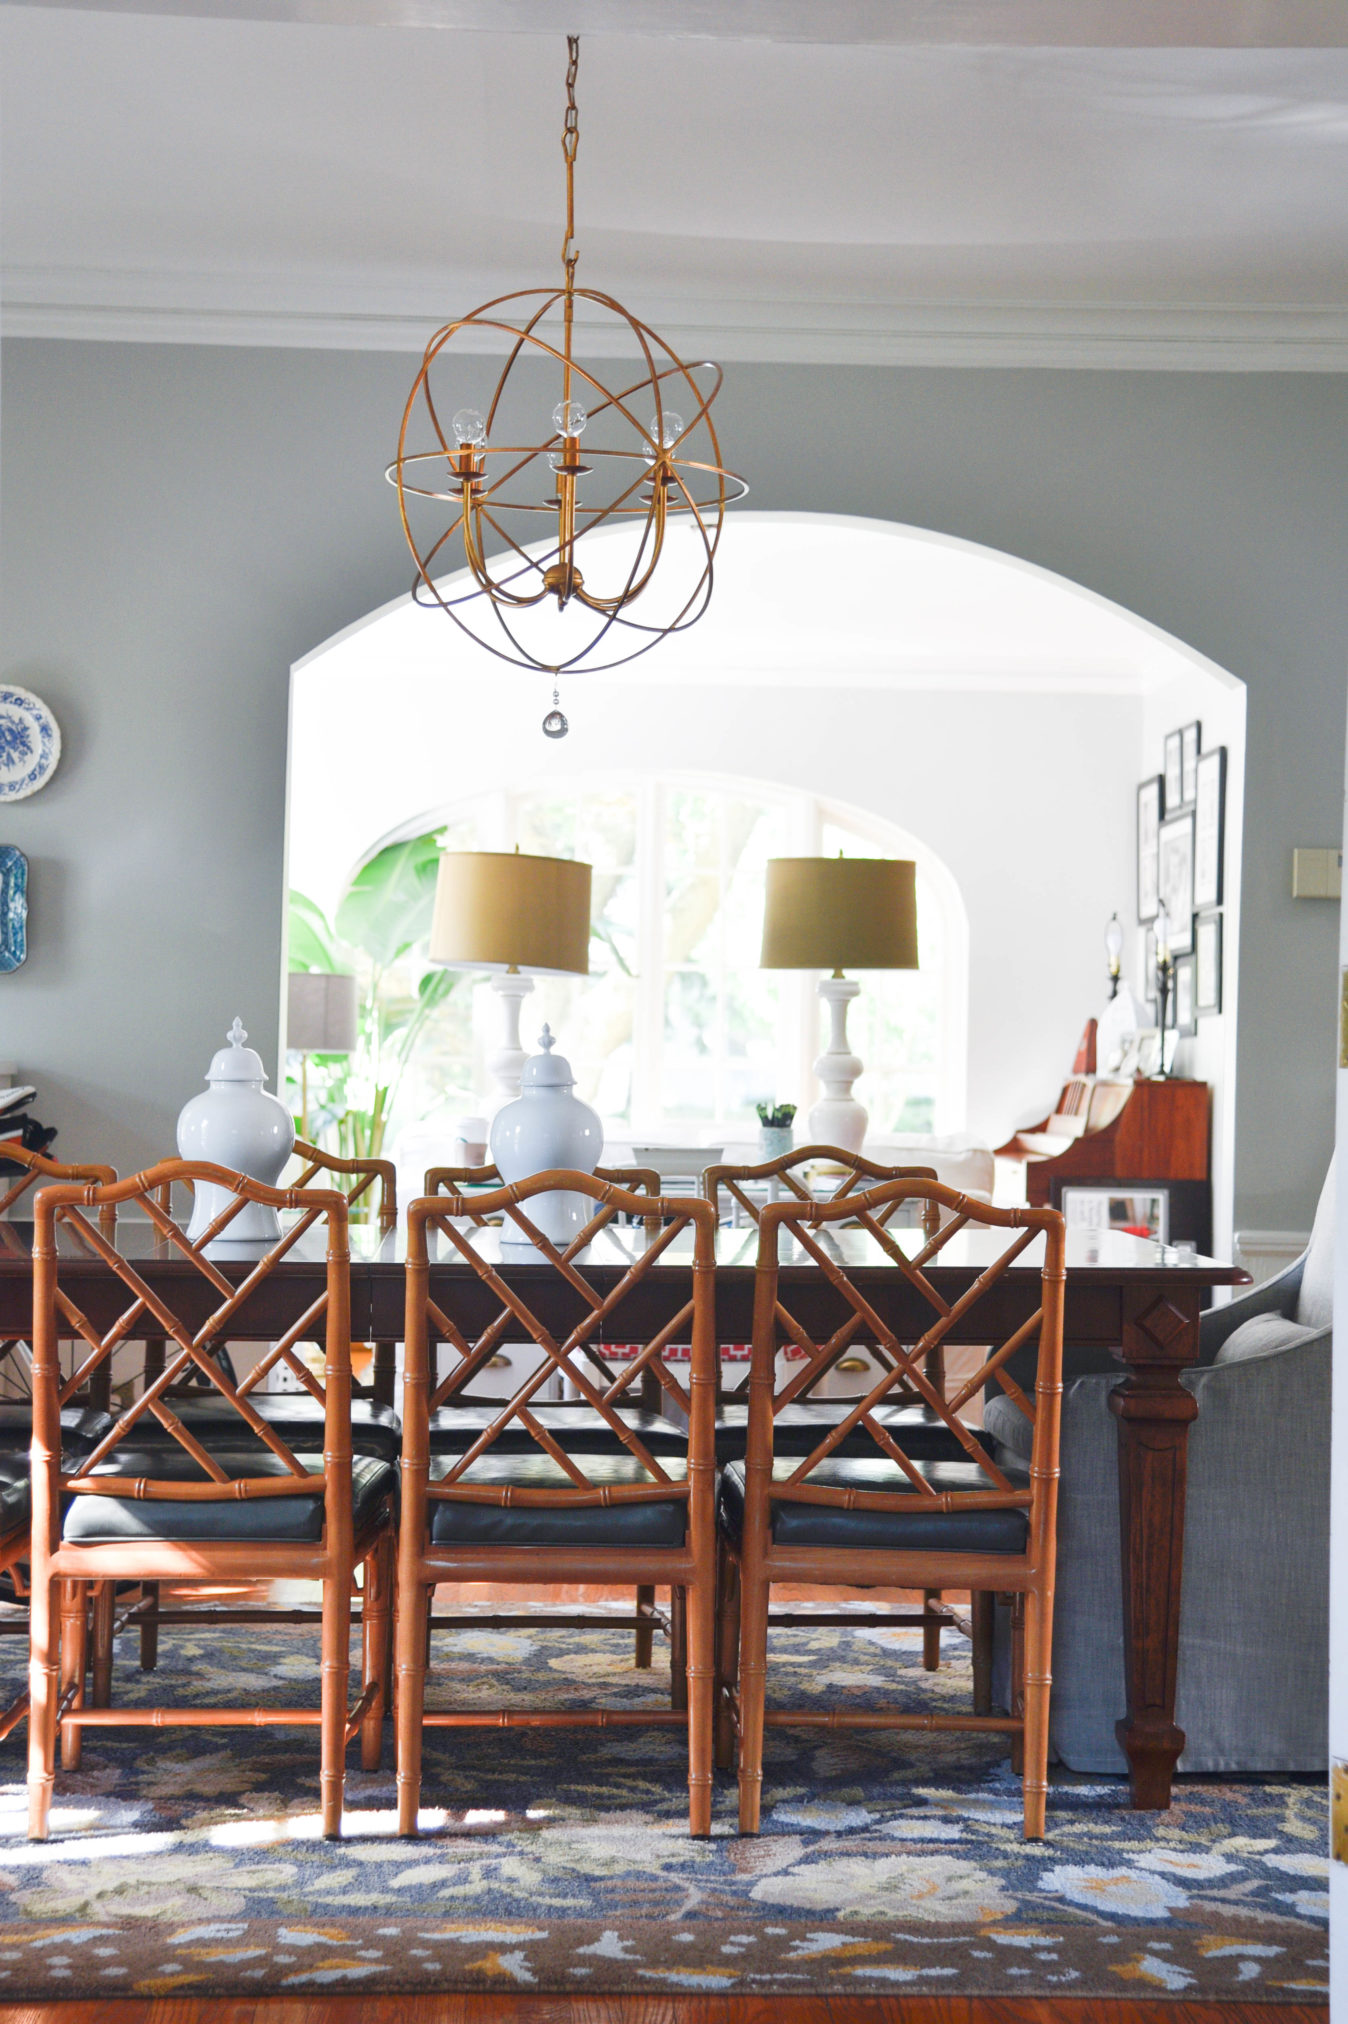 Home Bloggers Home Tour dining room styling tips www.homewithkeki.com